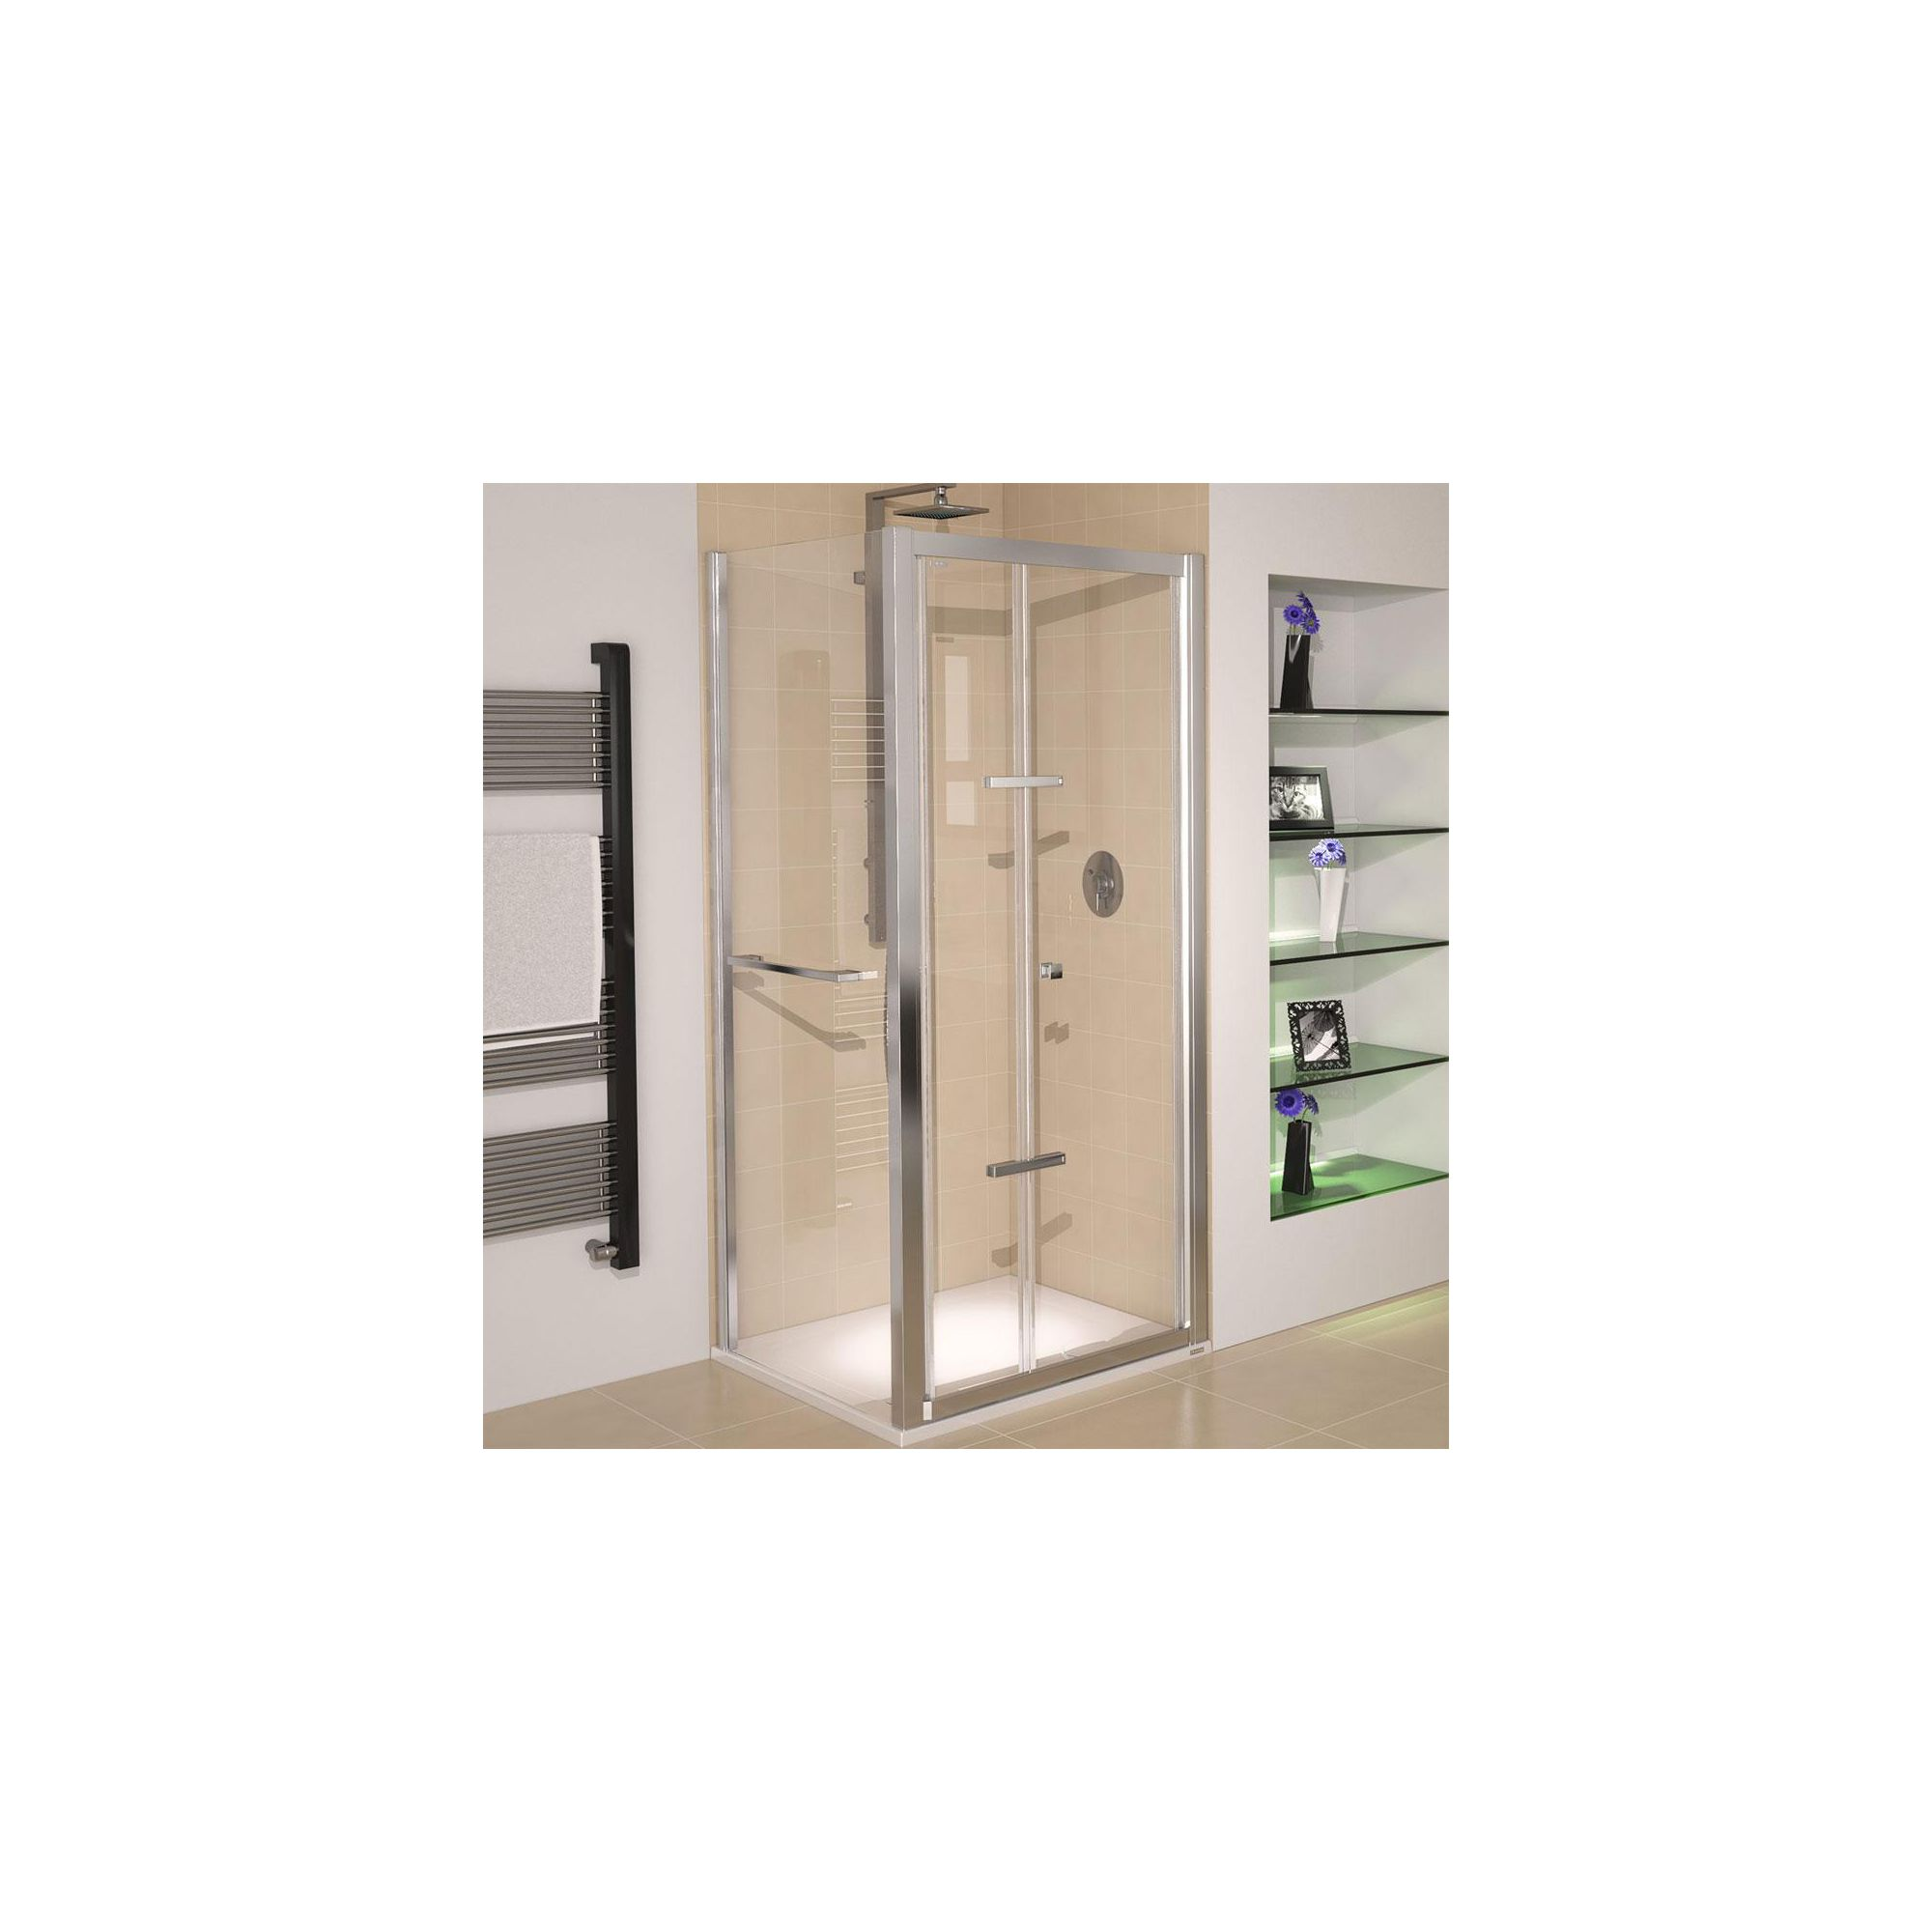 Aqualux AQUA8 Glide Bi-Fold Shower Door, 800mm Wide, Polished Silver Frame, 8mm Glass at Tescos Direct